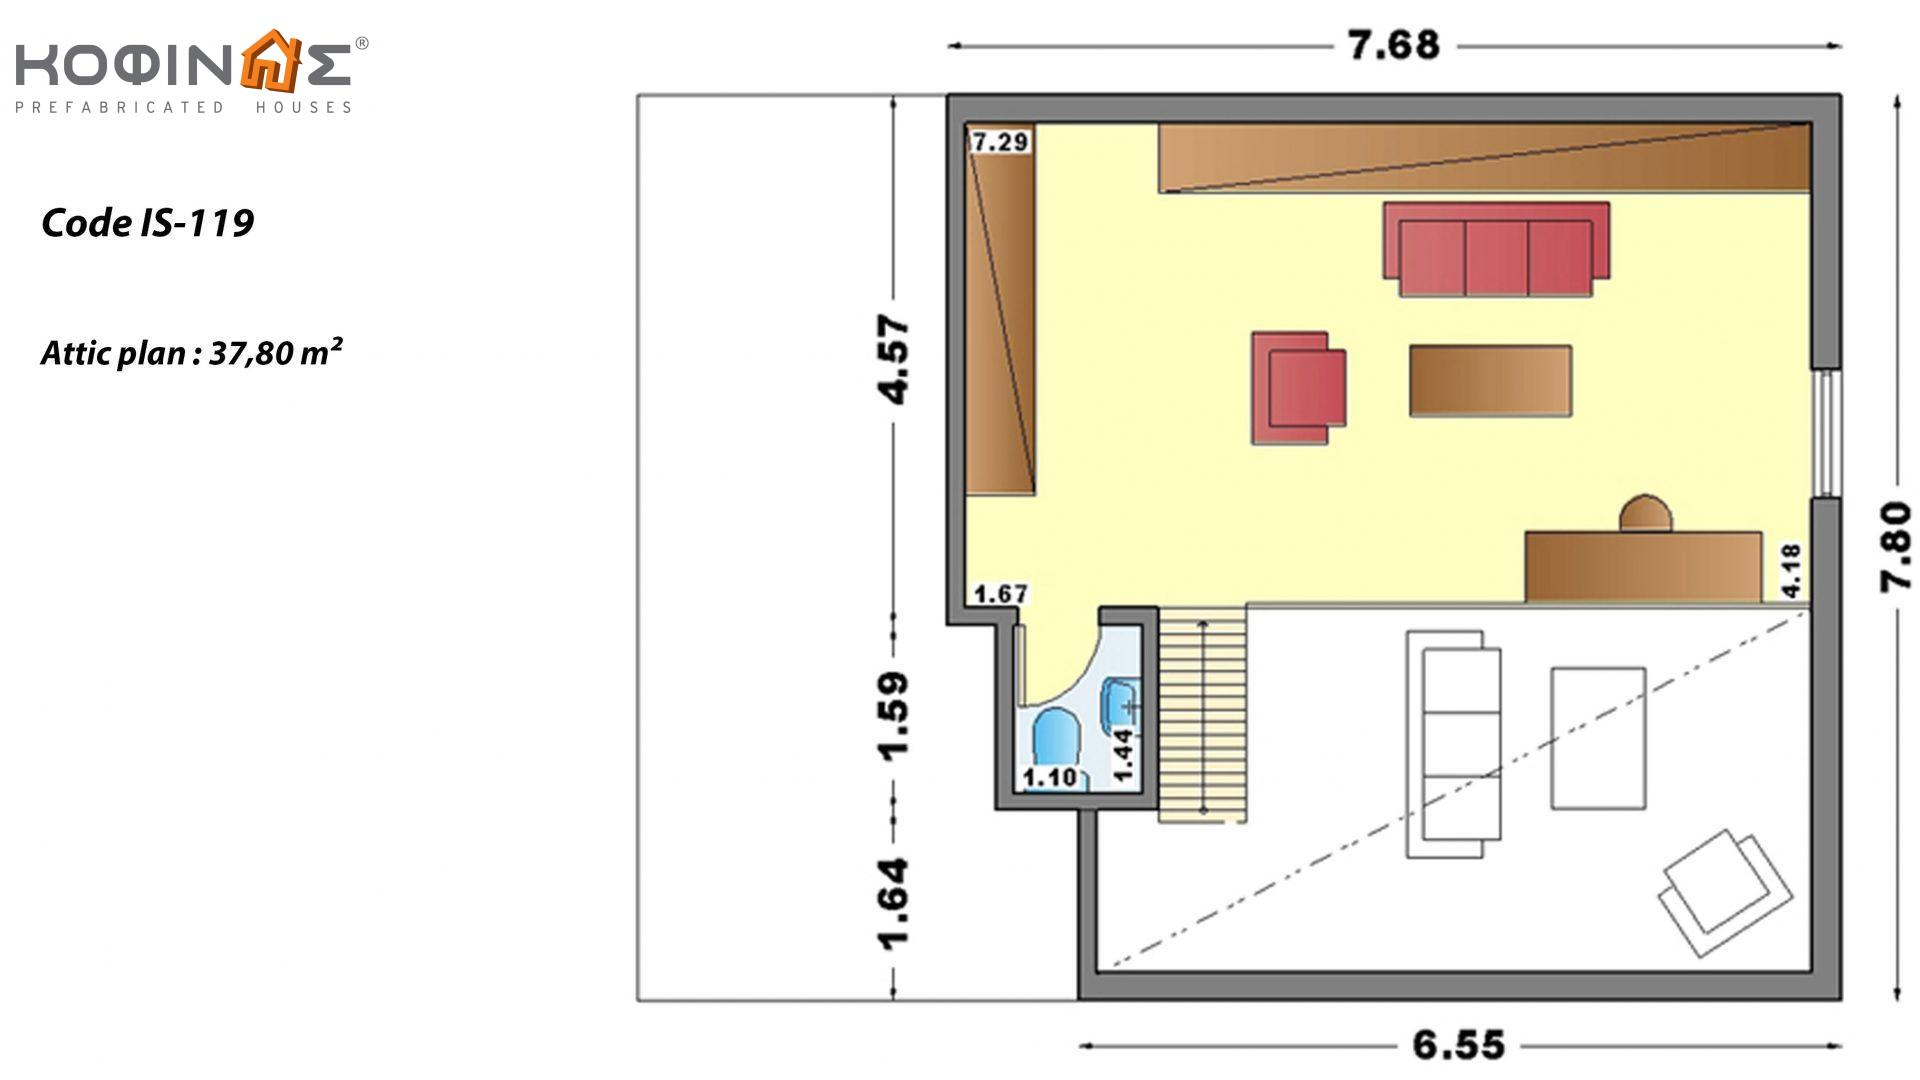 1-story house with attic IS-119, total surface of 119,70 m² ,roofed areas 27,70 m²